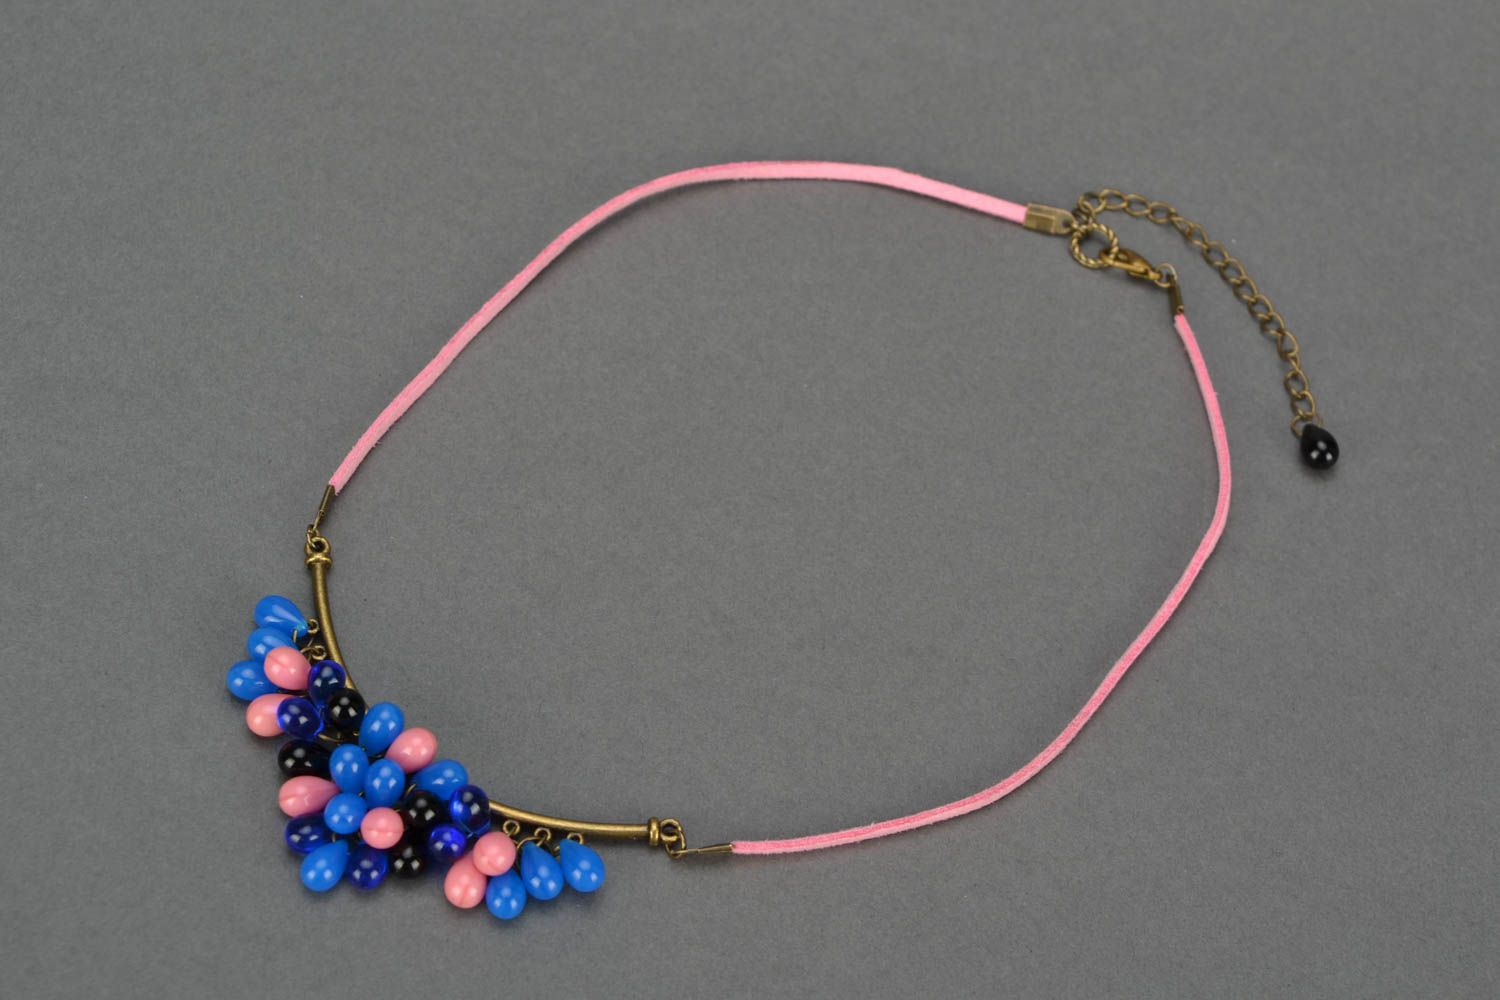 Handmade women's necklace with bright glass beads on suede pink cord photo 1